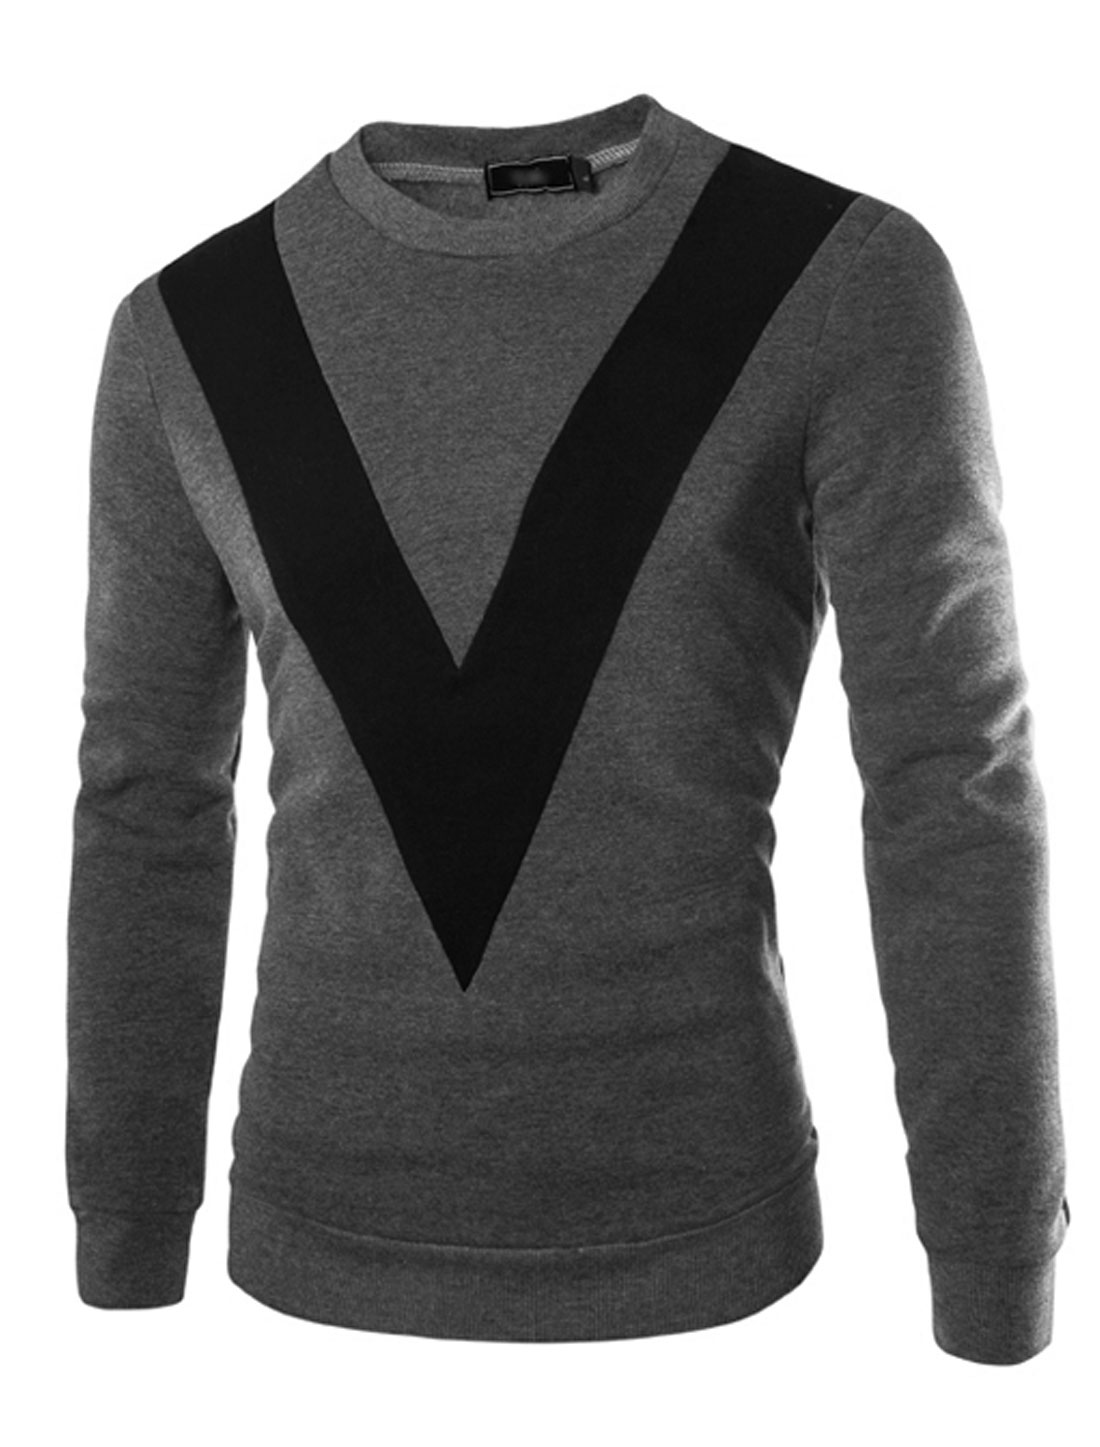 Man Contrast Color V-Shaped Panel Crew Neck Sweatshirt Dark Gray M